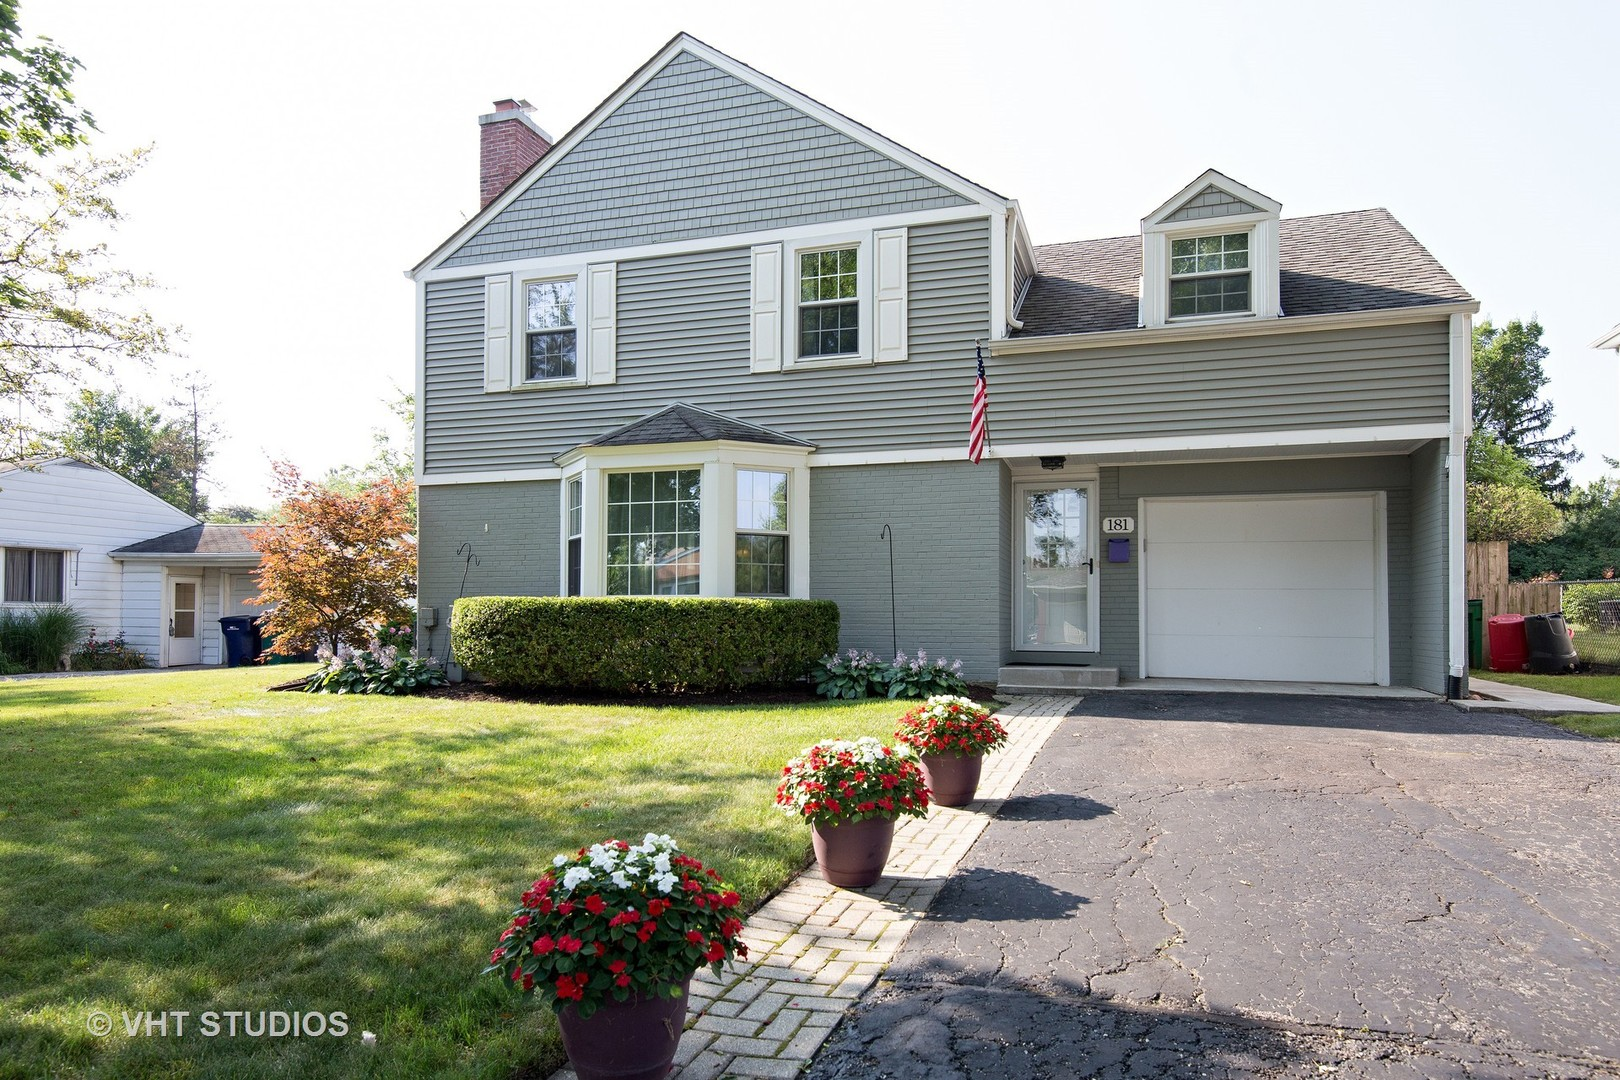 181 W Hickory Rd, Lombard IL 60148